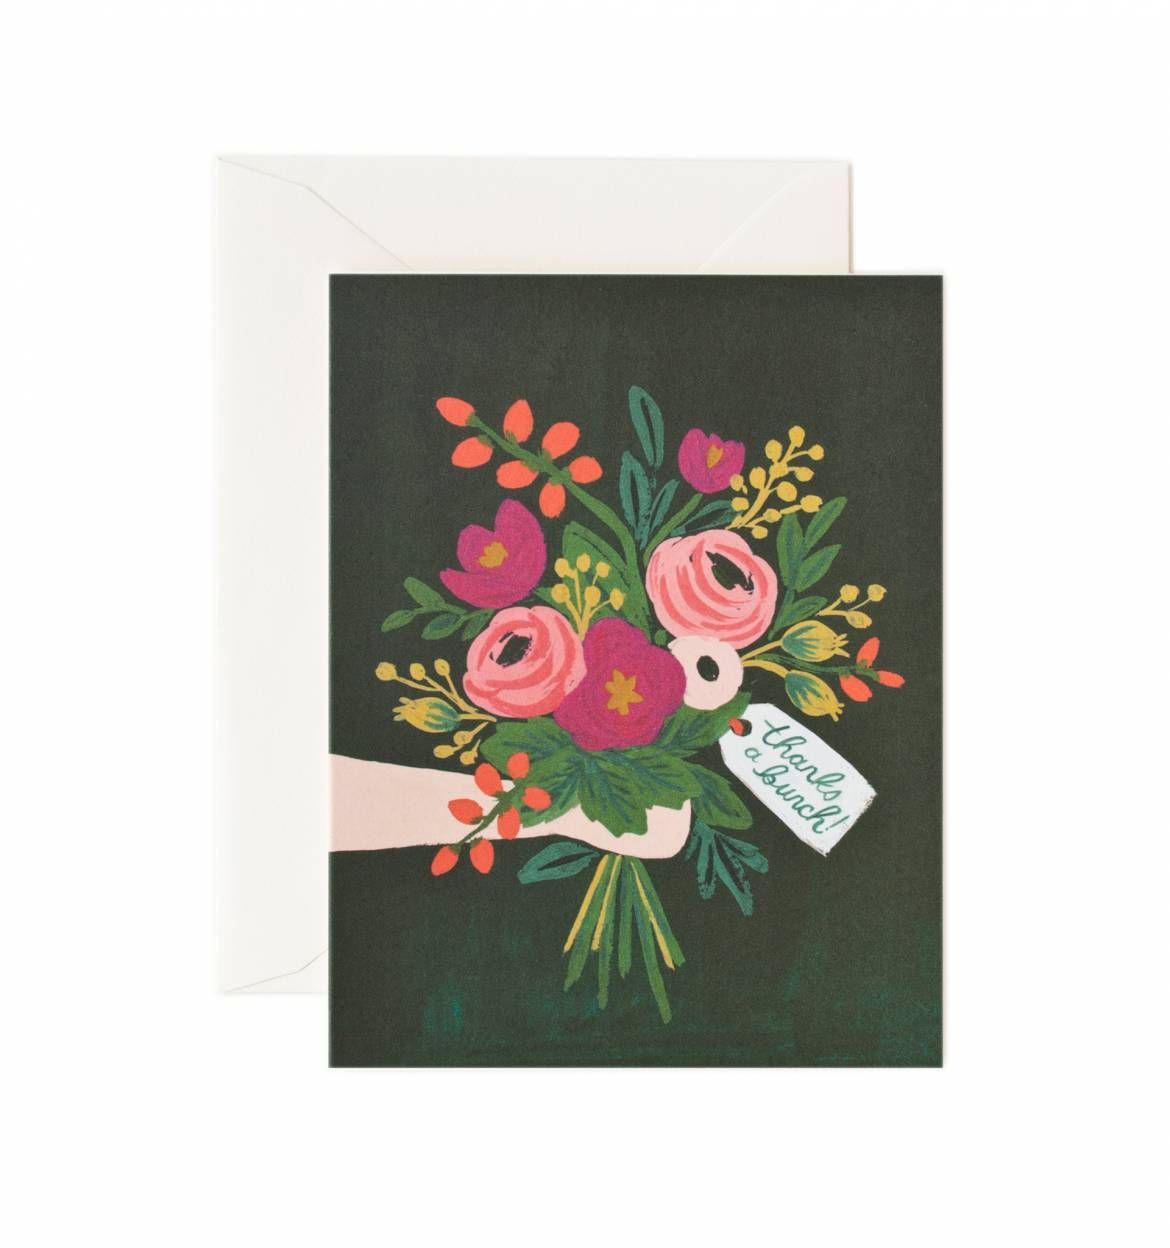 Thanks a bunch greeting card box sets box and letters thanks a bunch greeting card m4hsunfo Choice Image